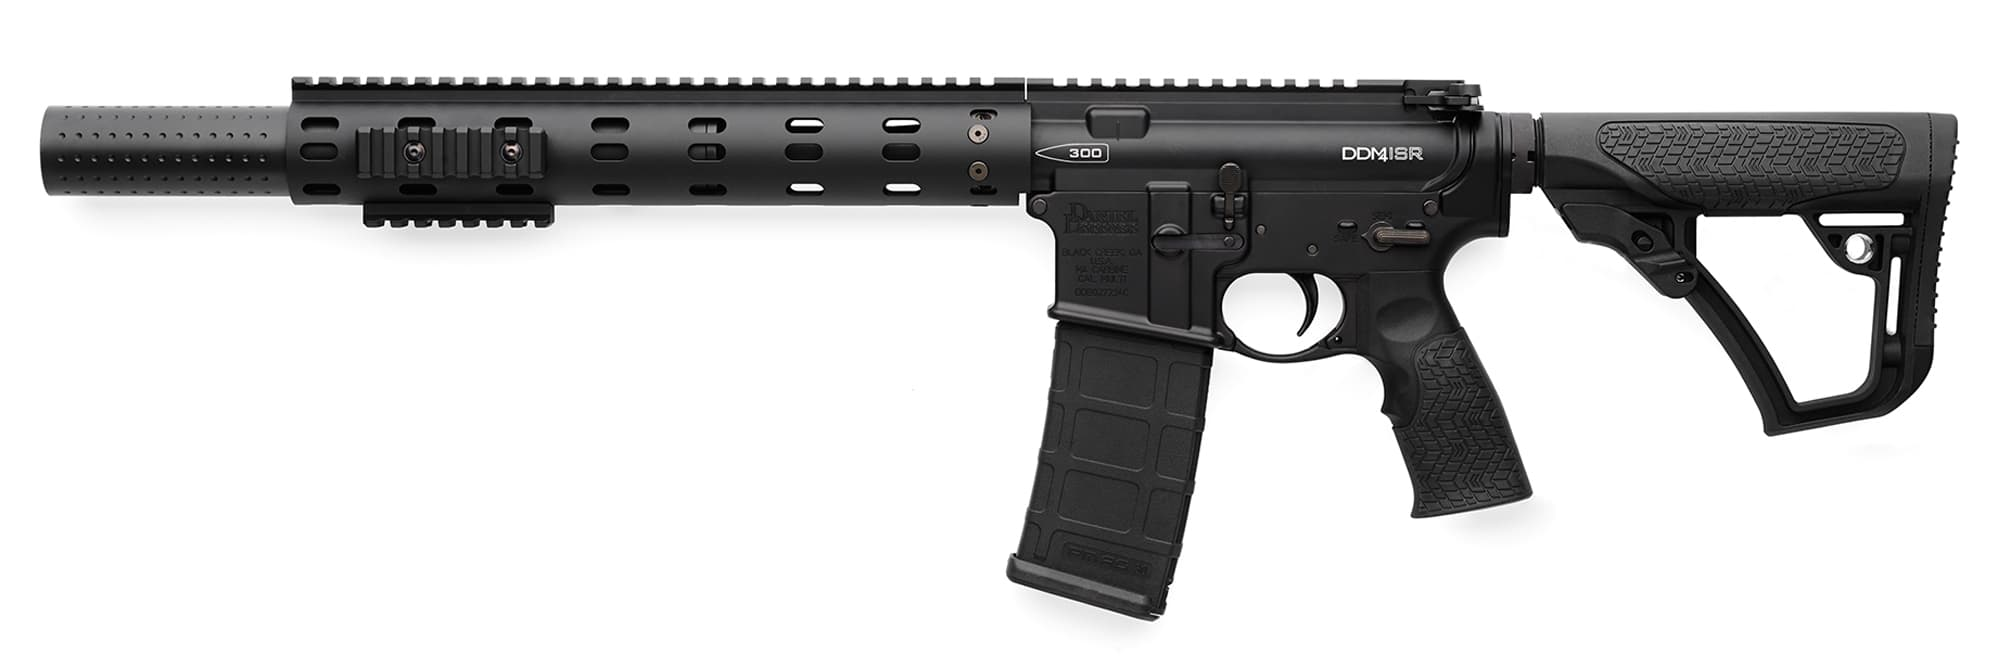 Daniel Defense Rifle DDM4ISR Integral Suppressor